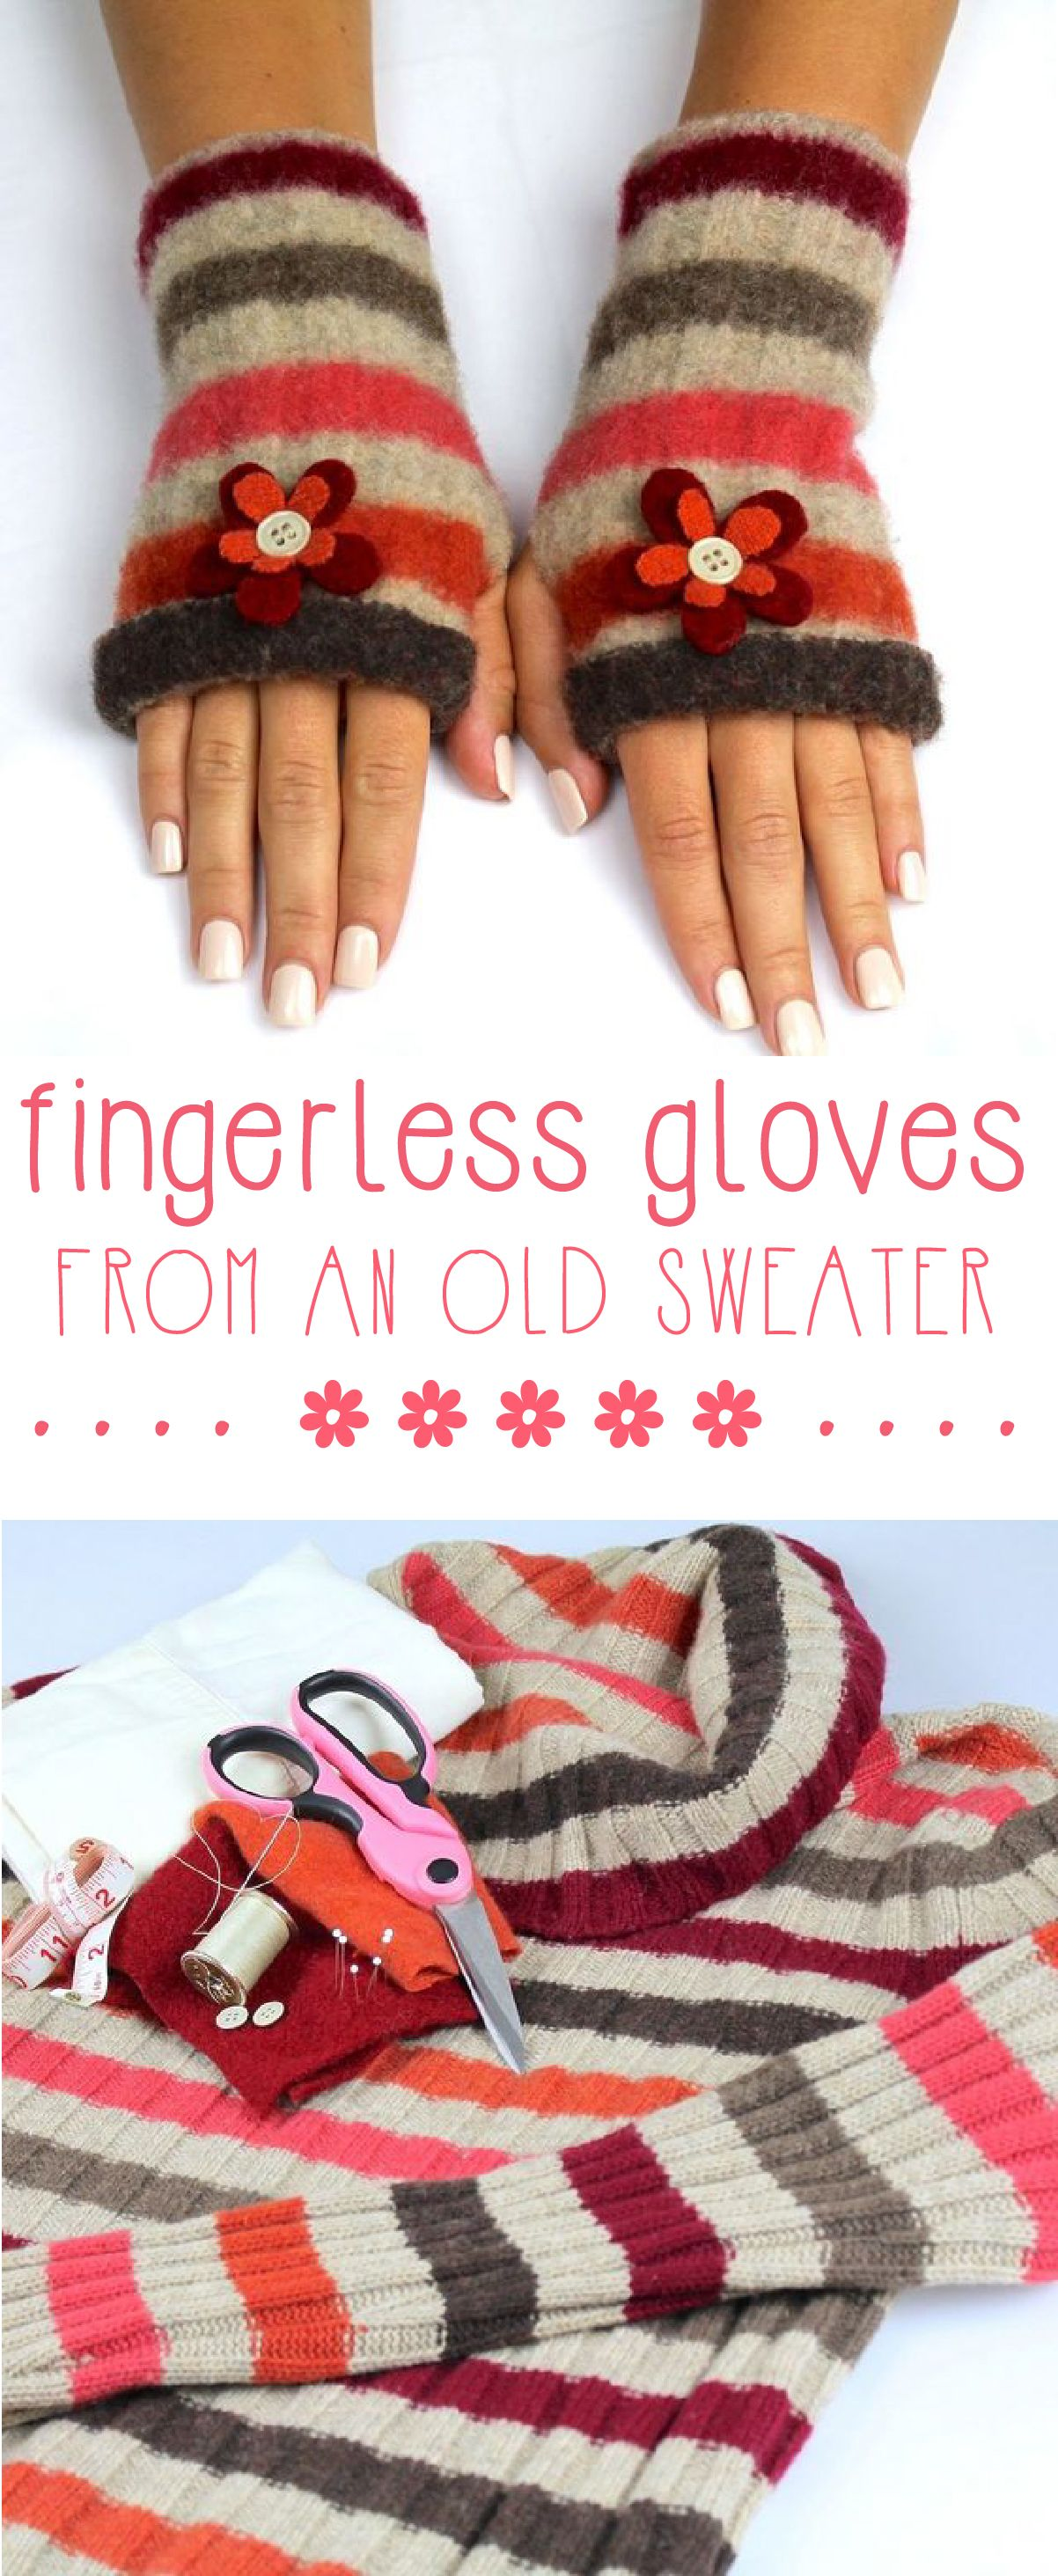 Fingerless gloves diy - Upcycle An Old Comfy Sweater Into The Cutest Fingerless Gloves Using Simple Sewing Techniques